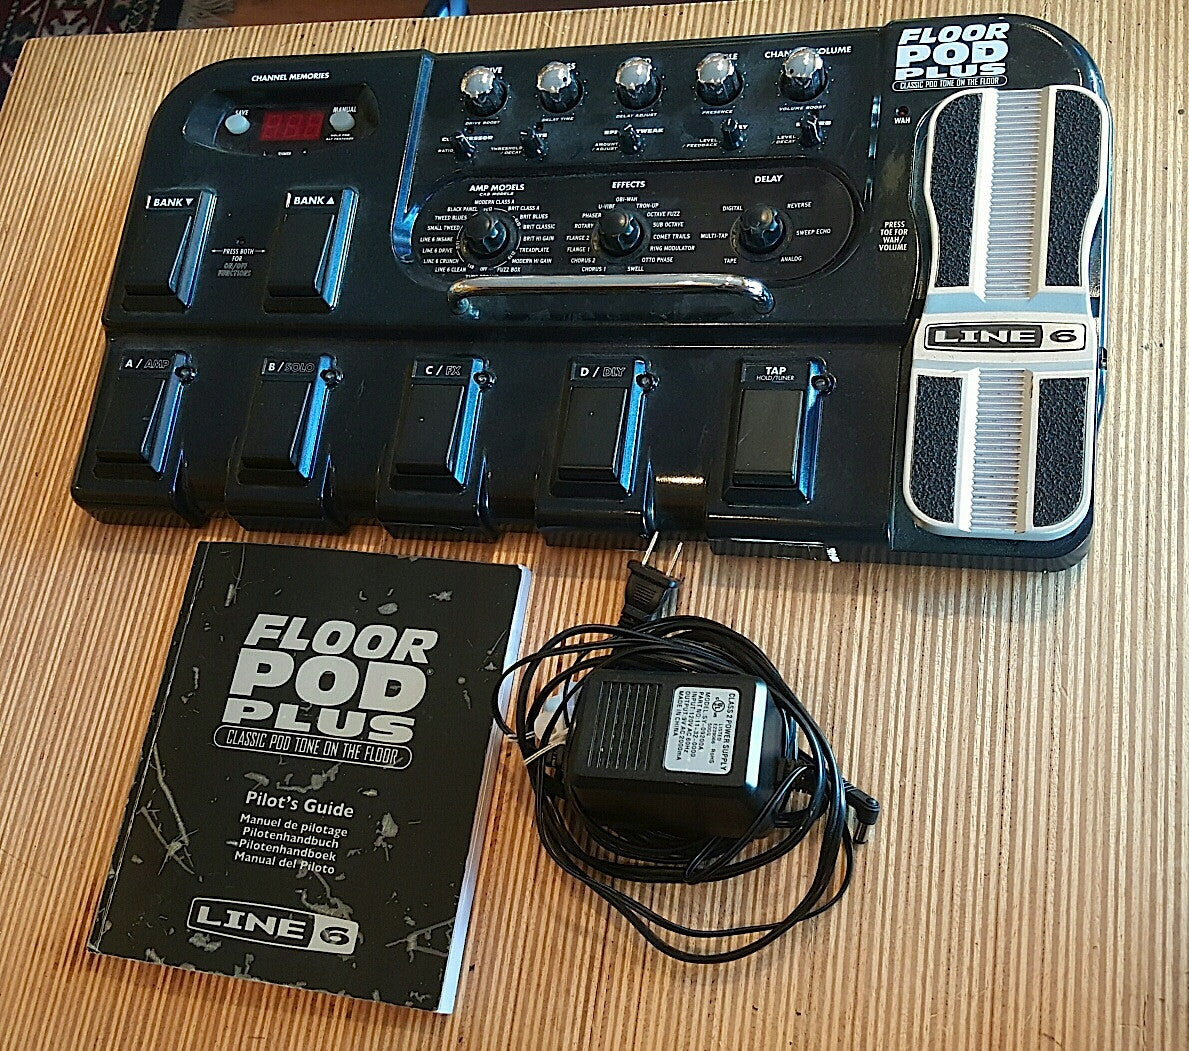 Pre Owned Line 6 Floor Pod Plus W/Manual